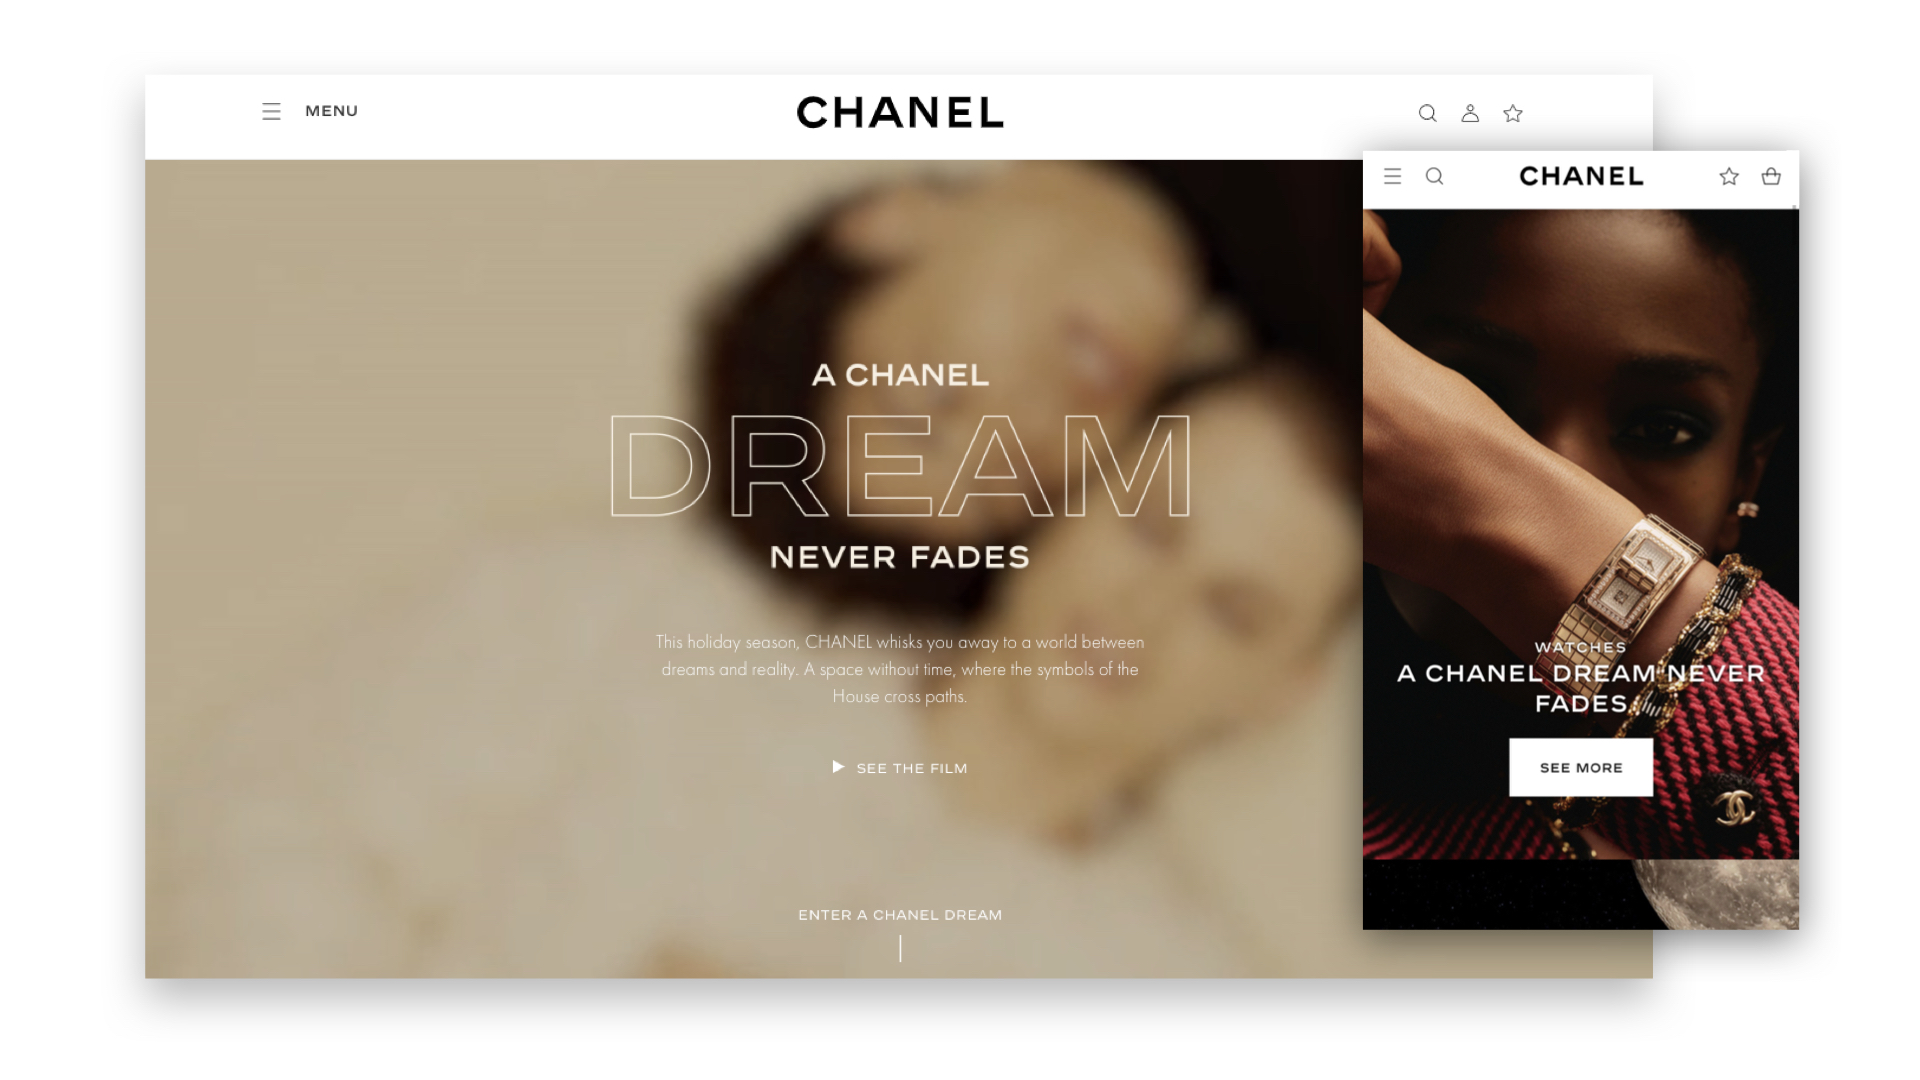 G & Co. is a luxury marketing agency and luxury digital agency: Chanel's eCommerce site, for desktop and mobile